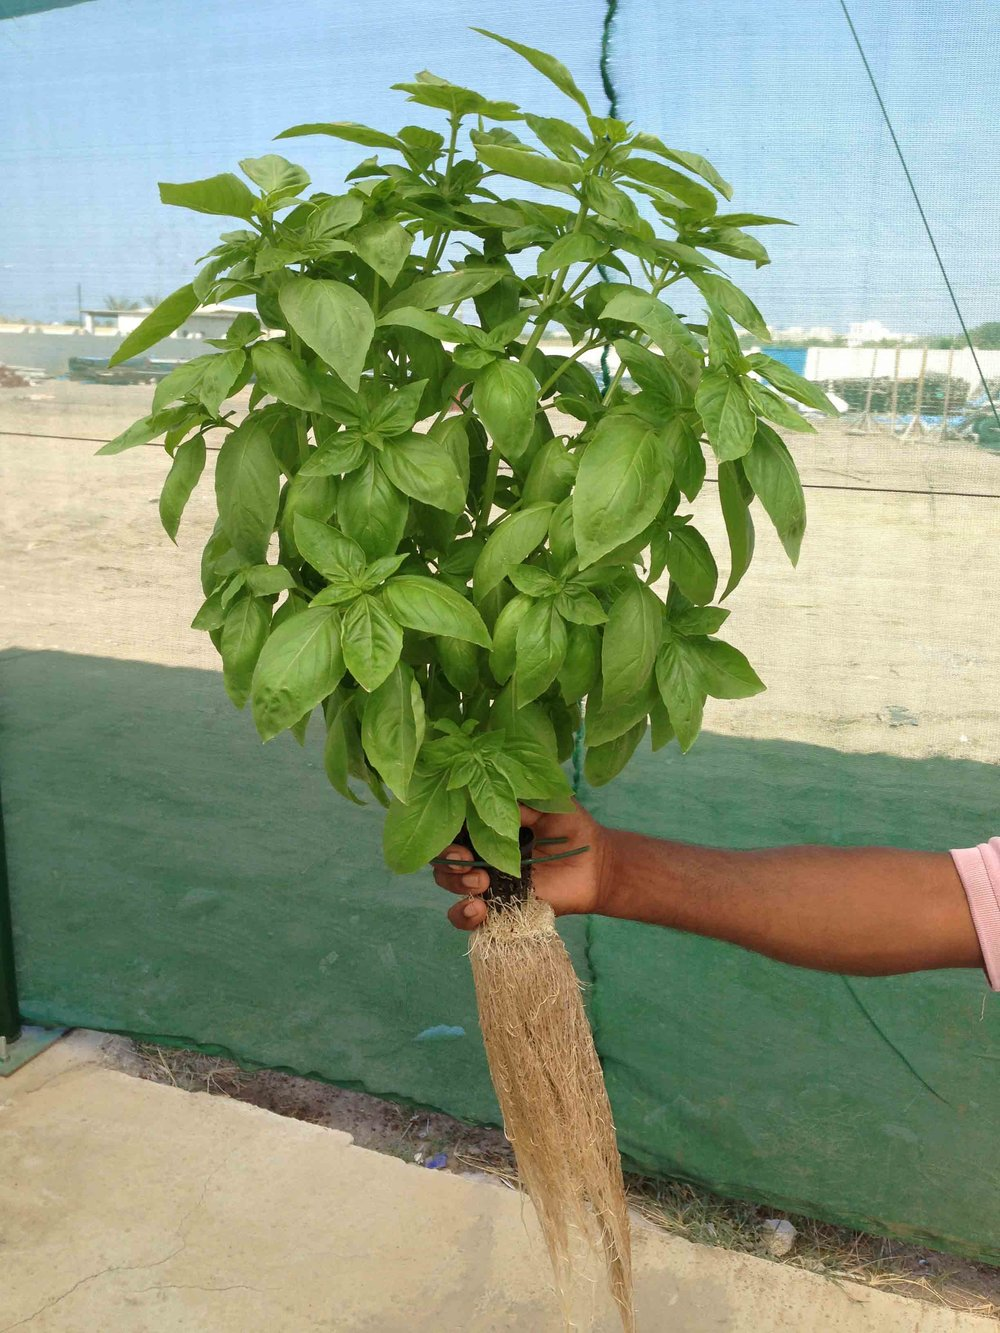 A healthy basil plant from an aquaponics system in Oman.